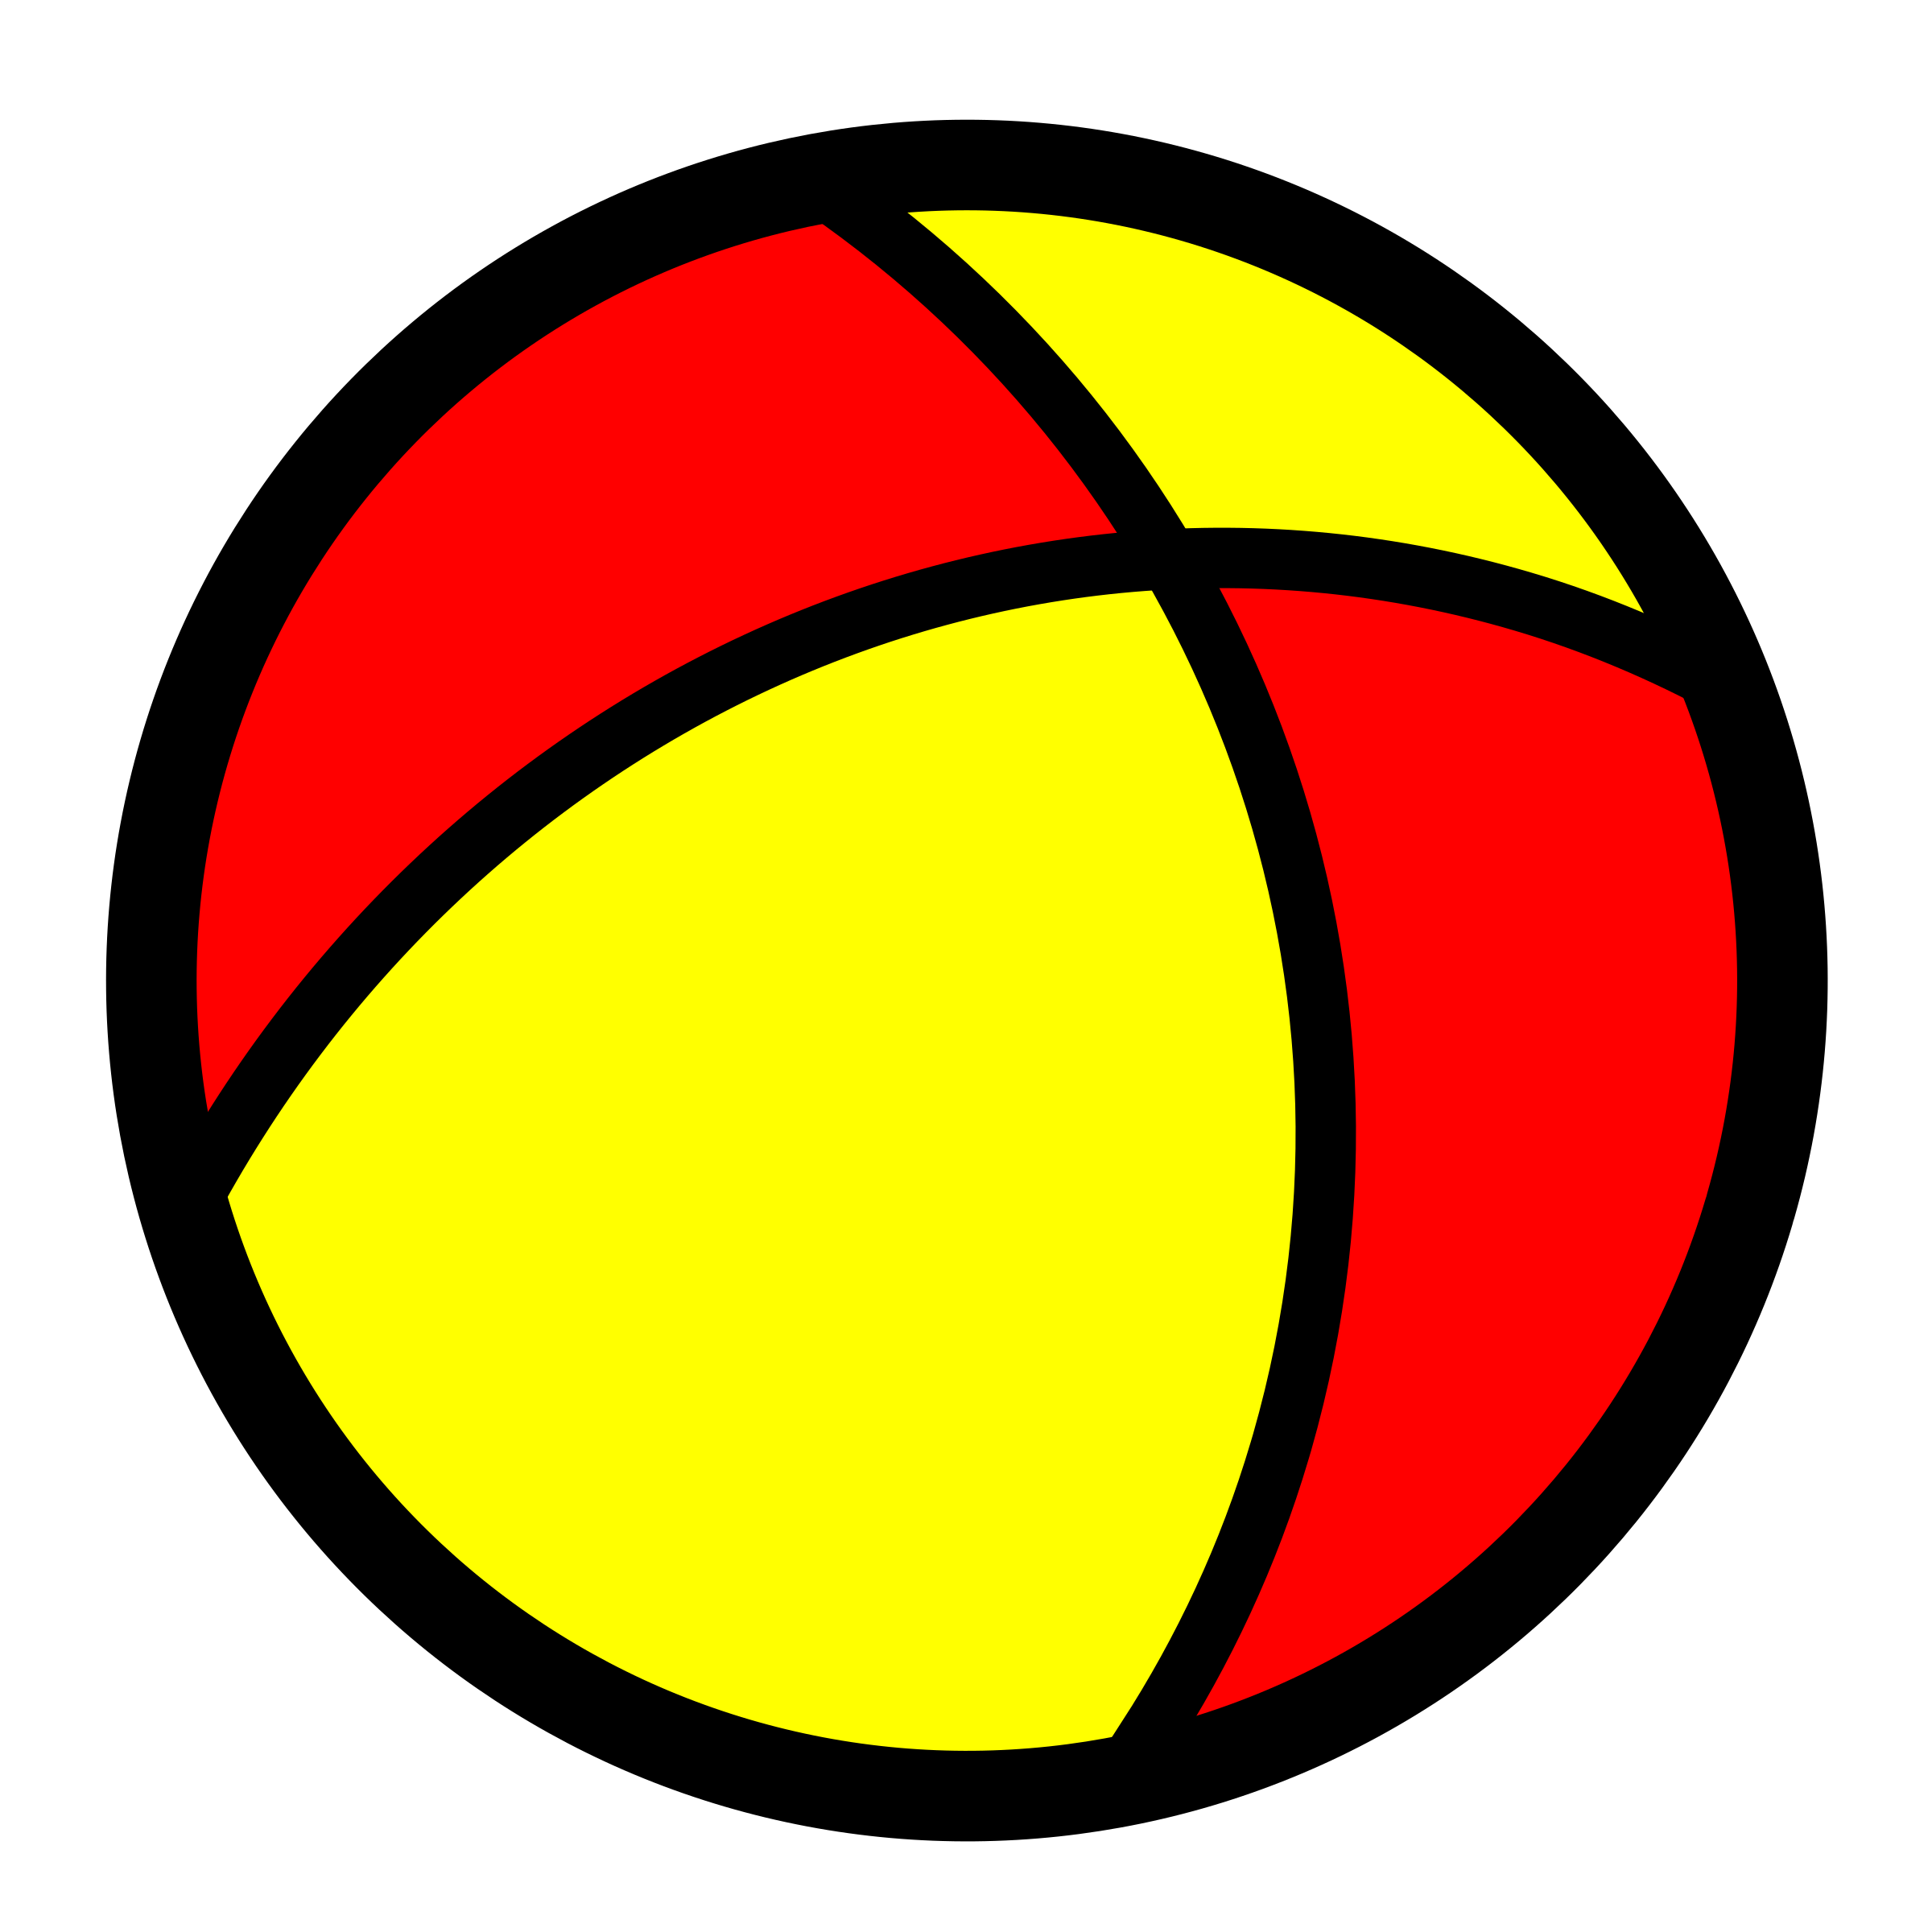 Ball icon by pitr